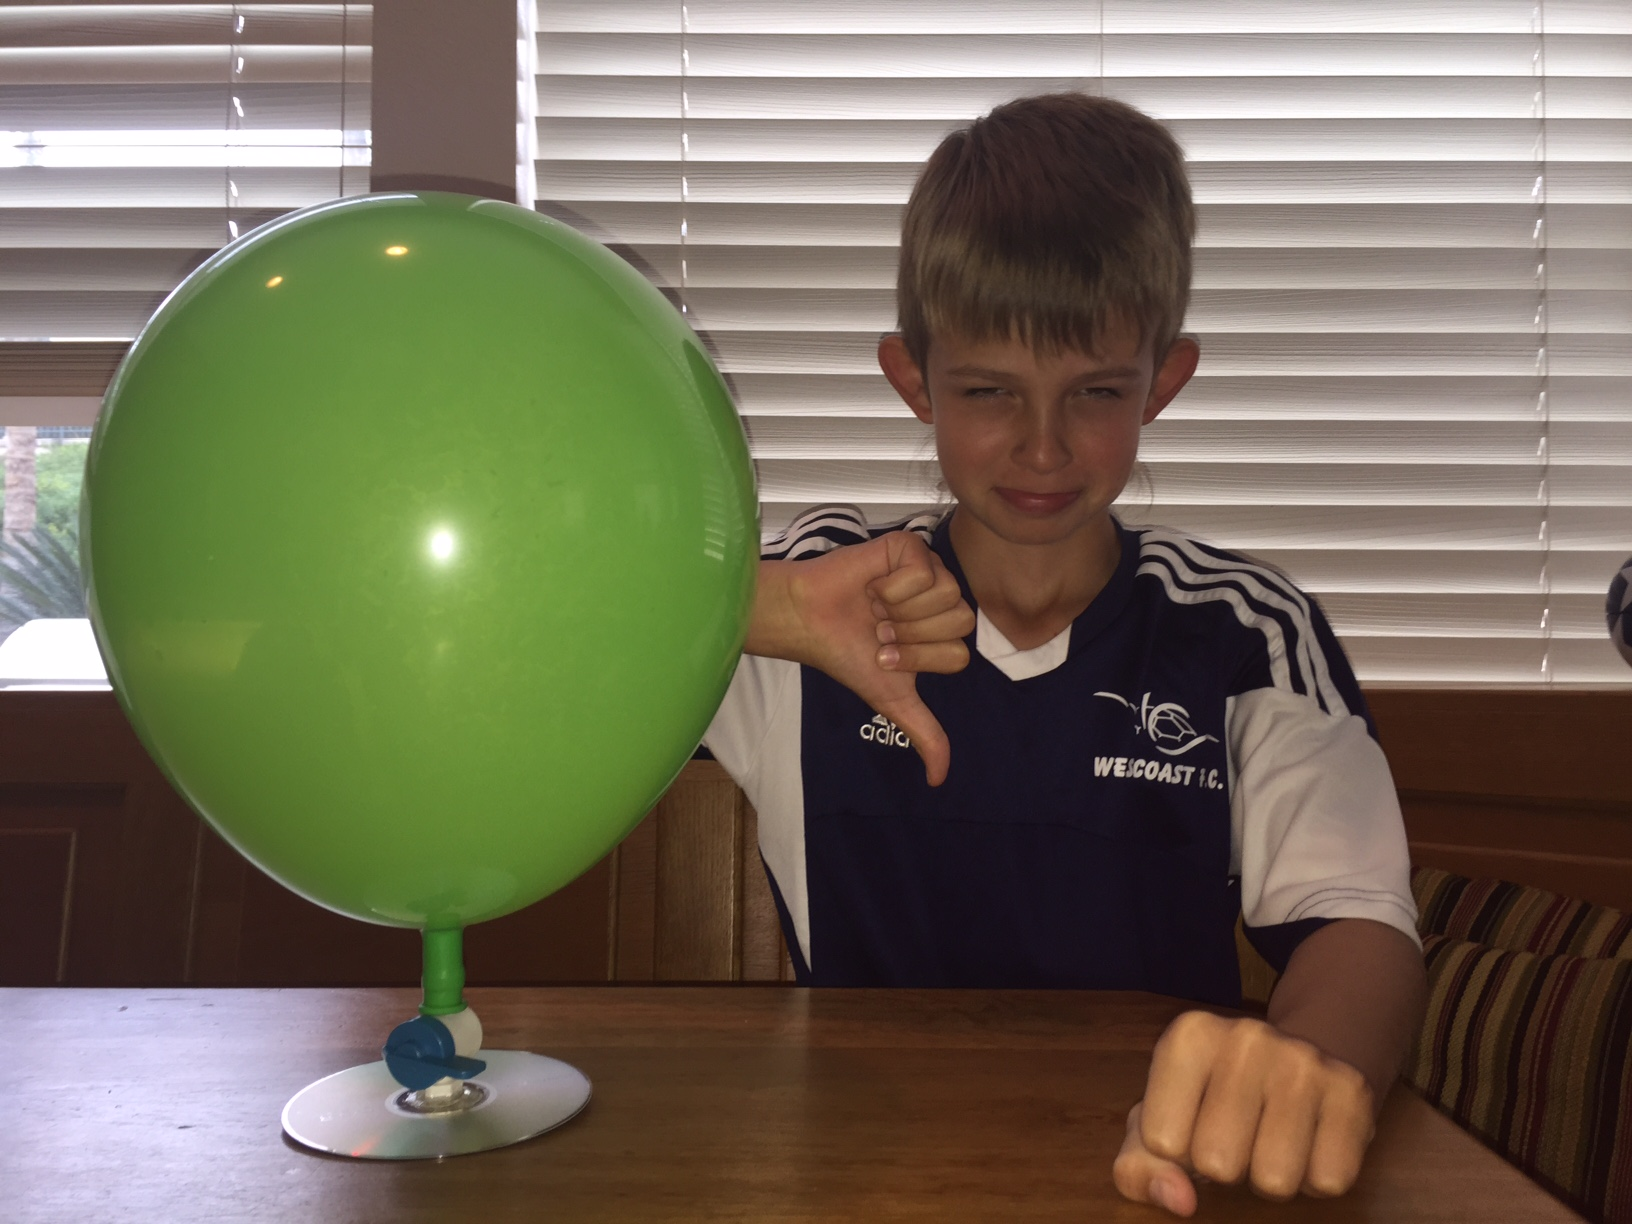 Science Fair Projects For 5th Graders With Balloons